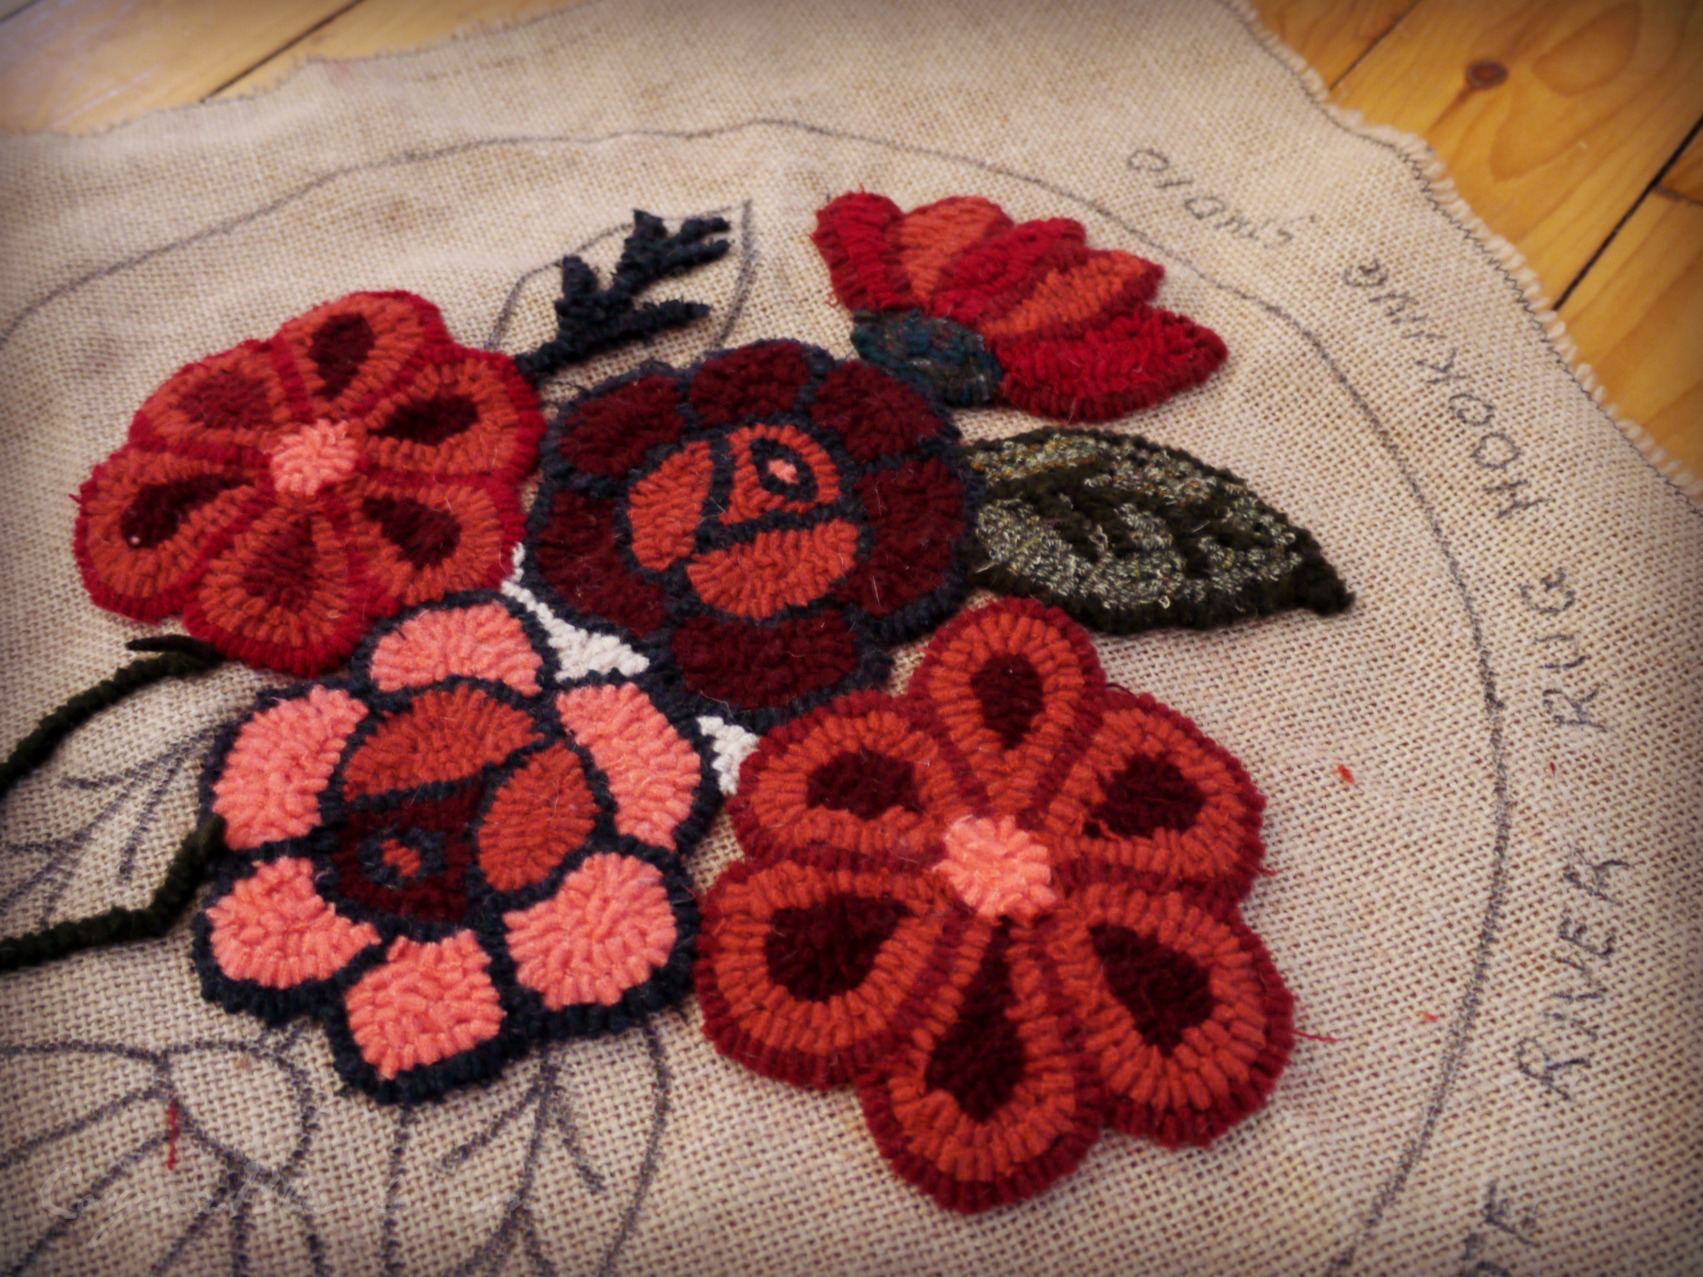 Floral mat in progress. Flowers hooked with wool strips.